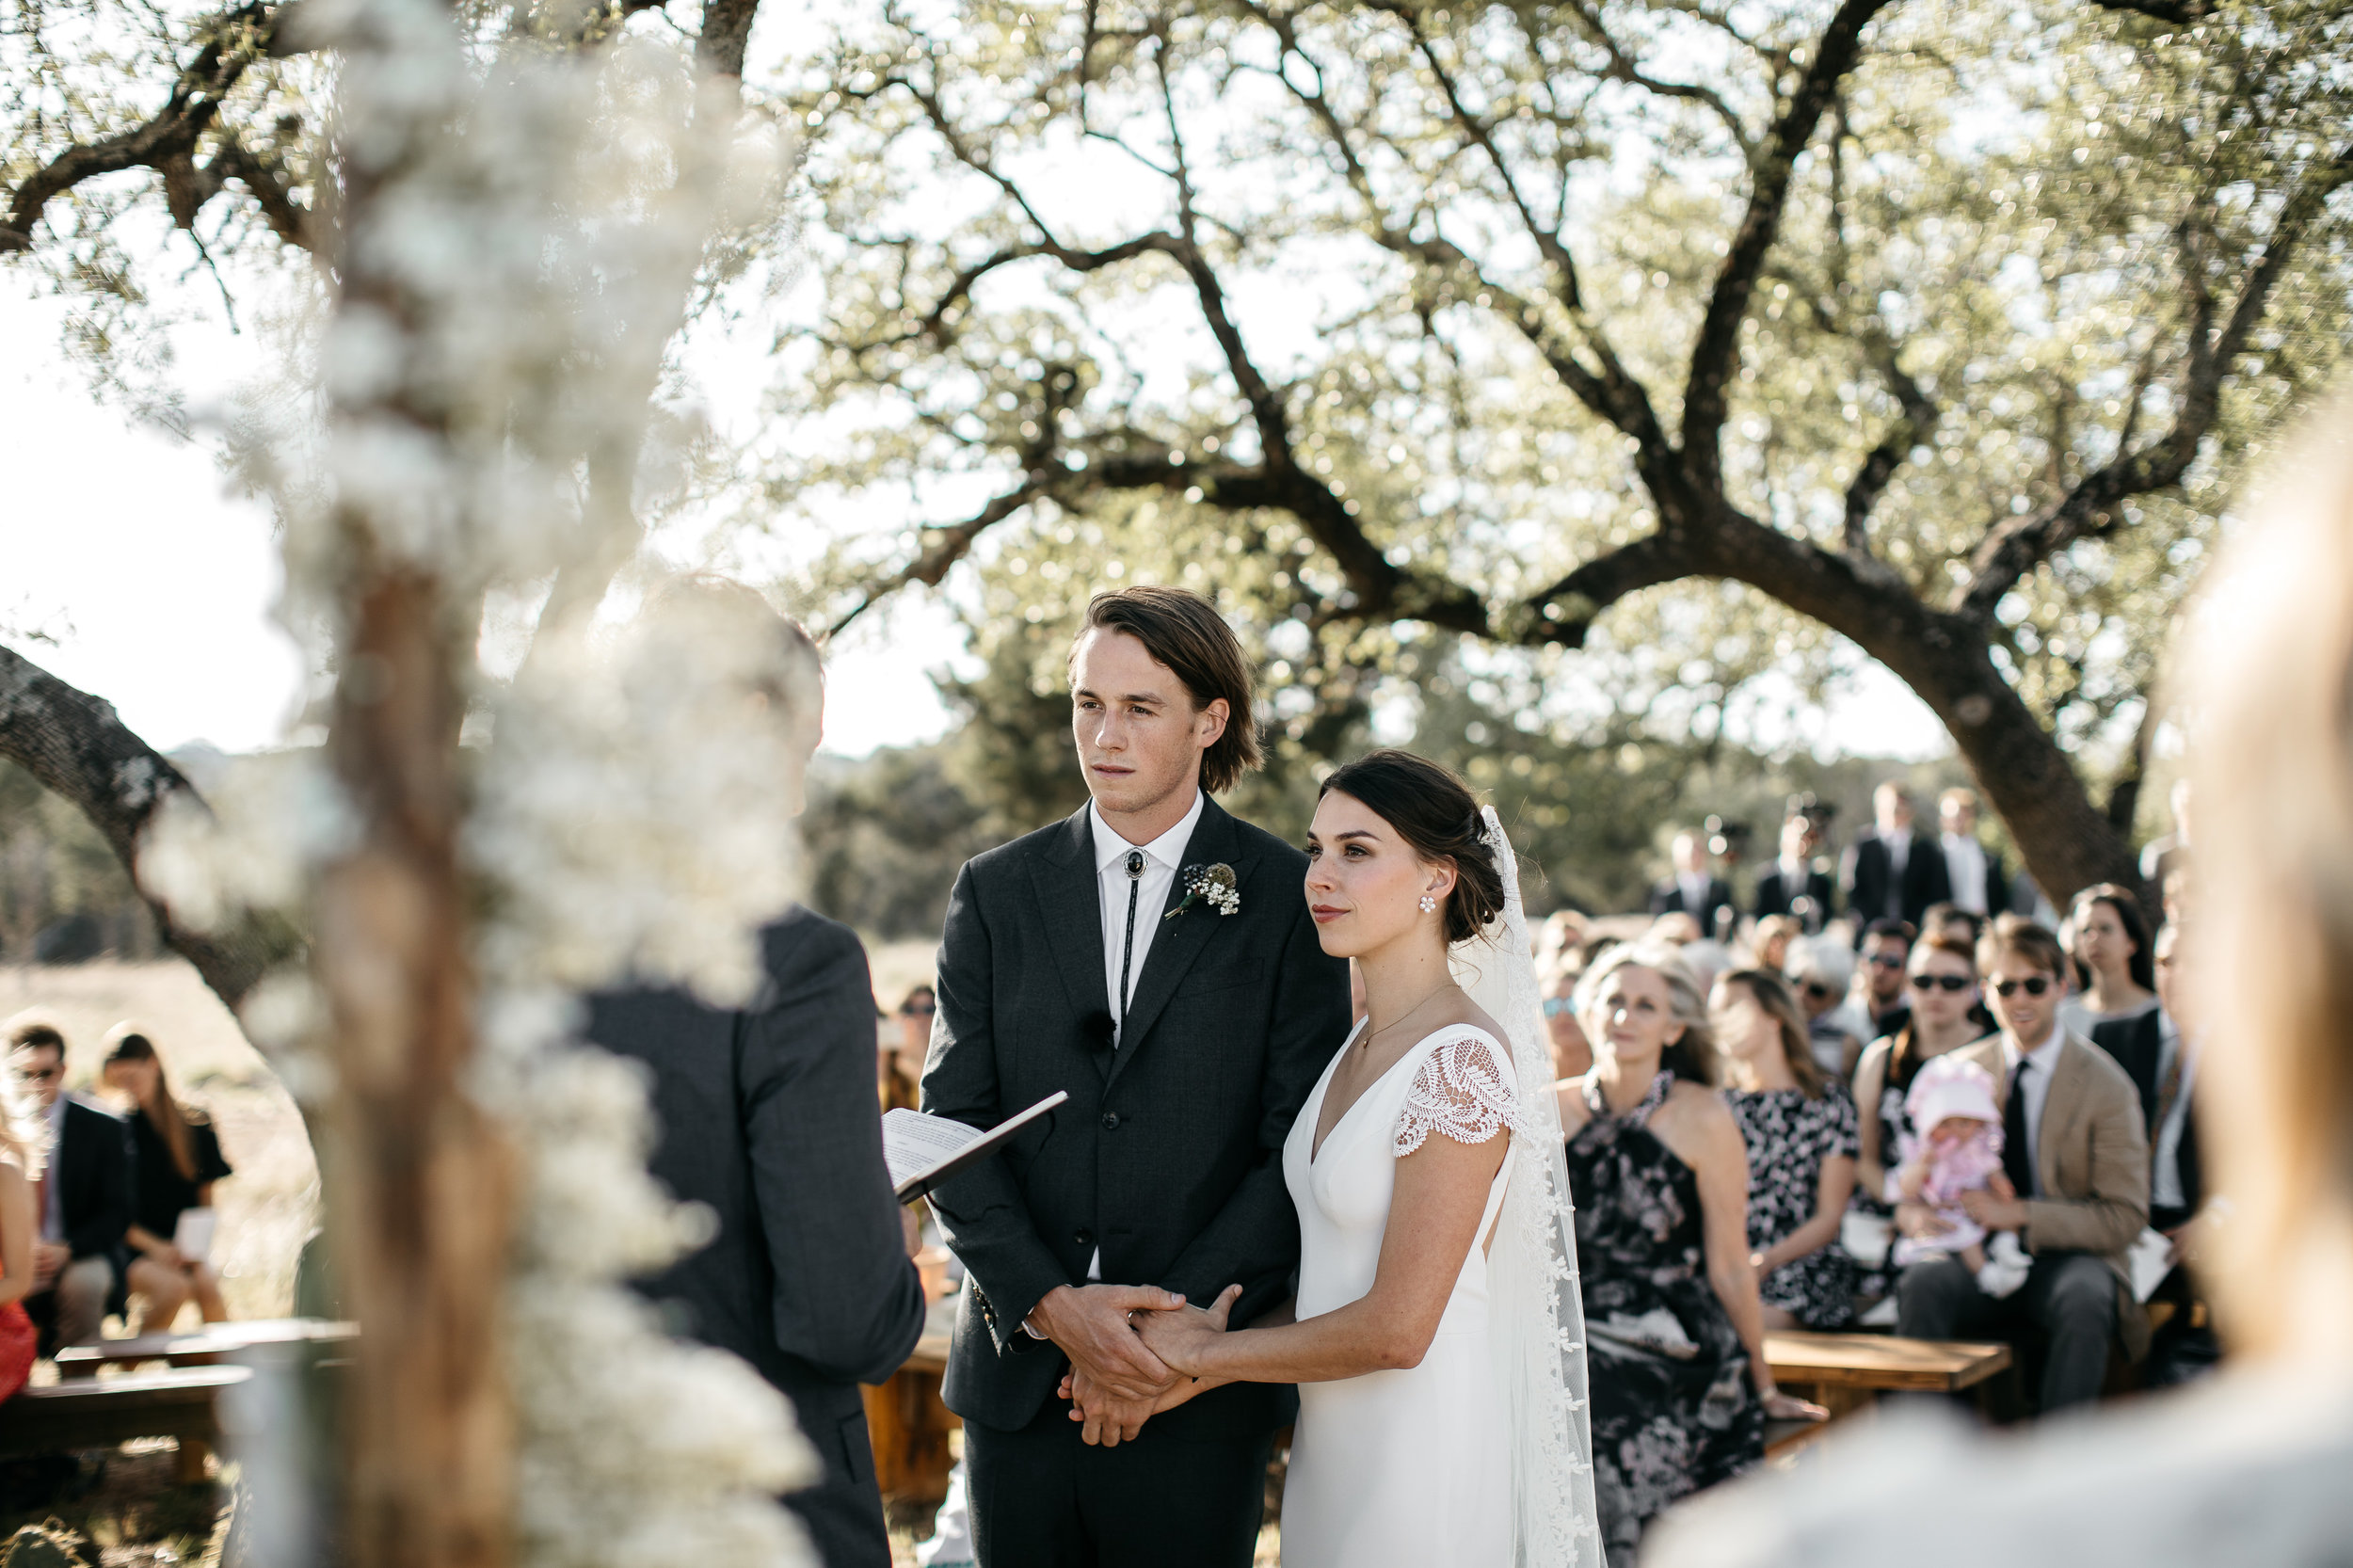 Kate_Luke_Texas_Wedding_JeanLaurentGaudy_378.jpg